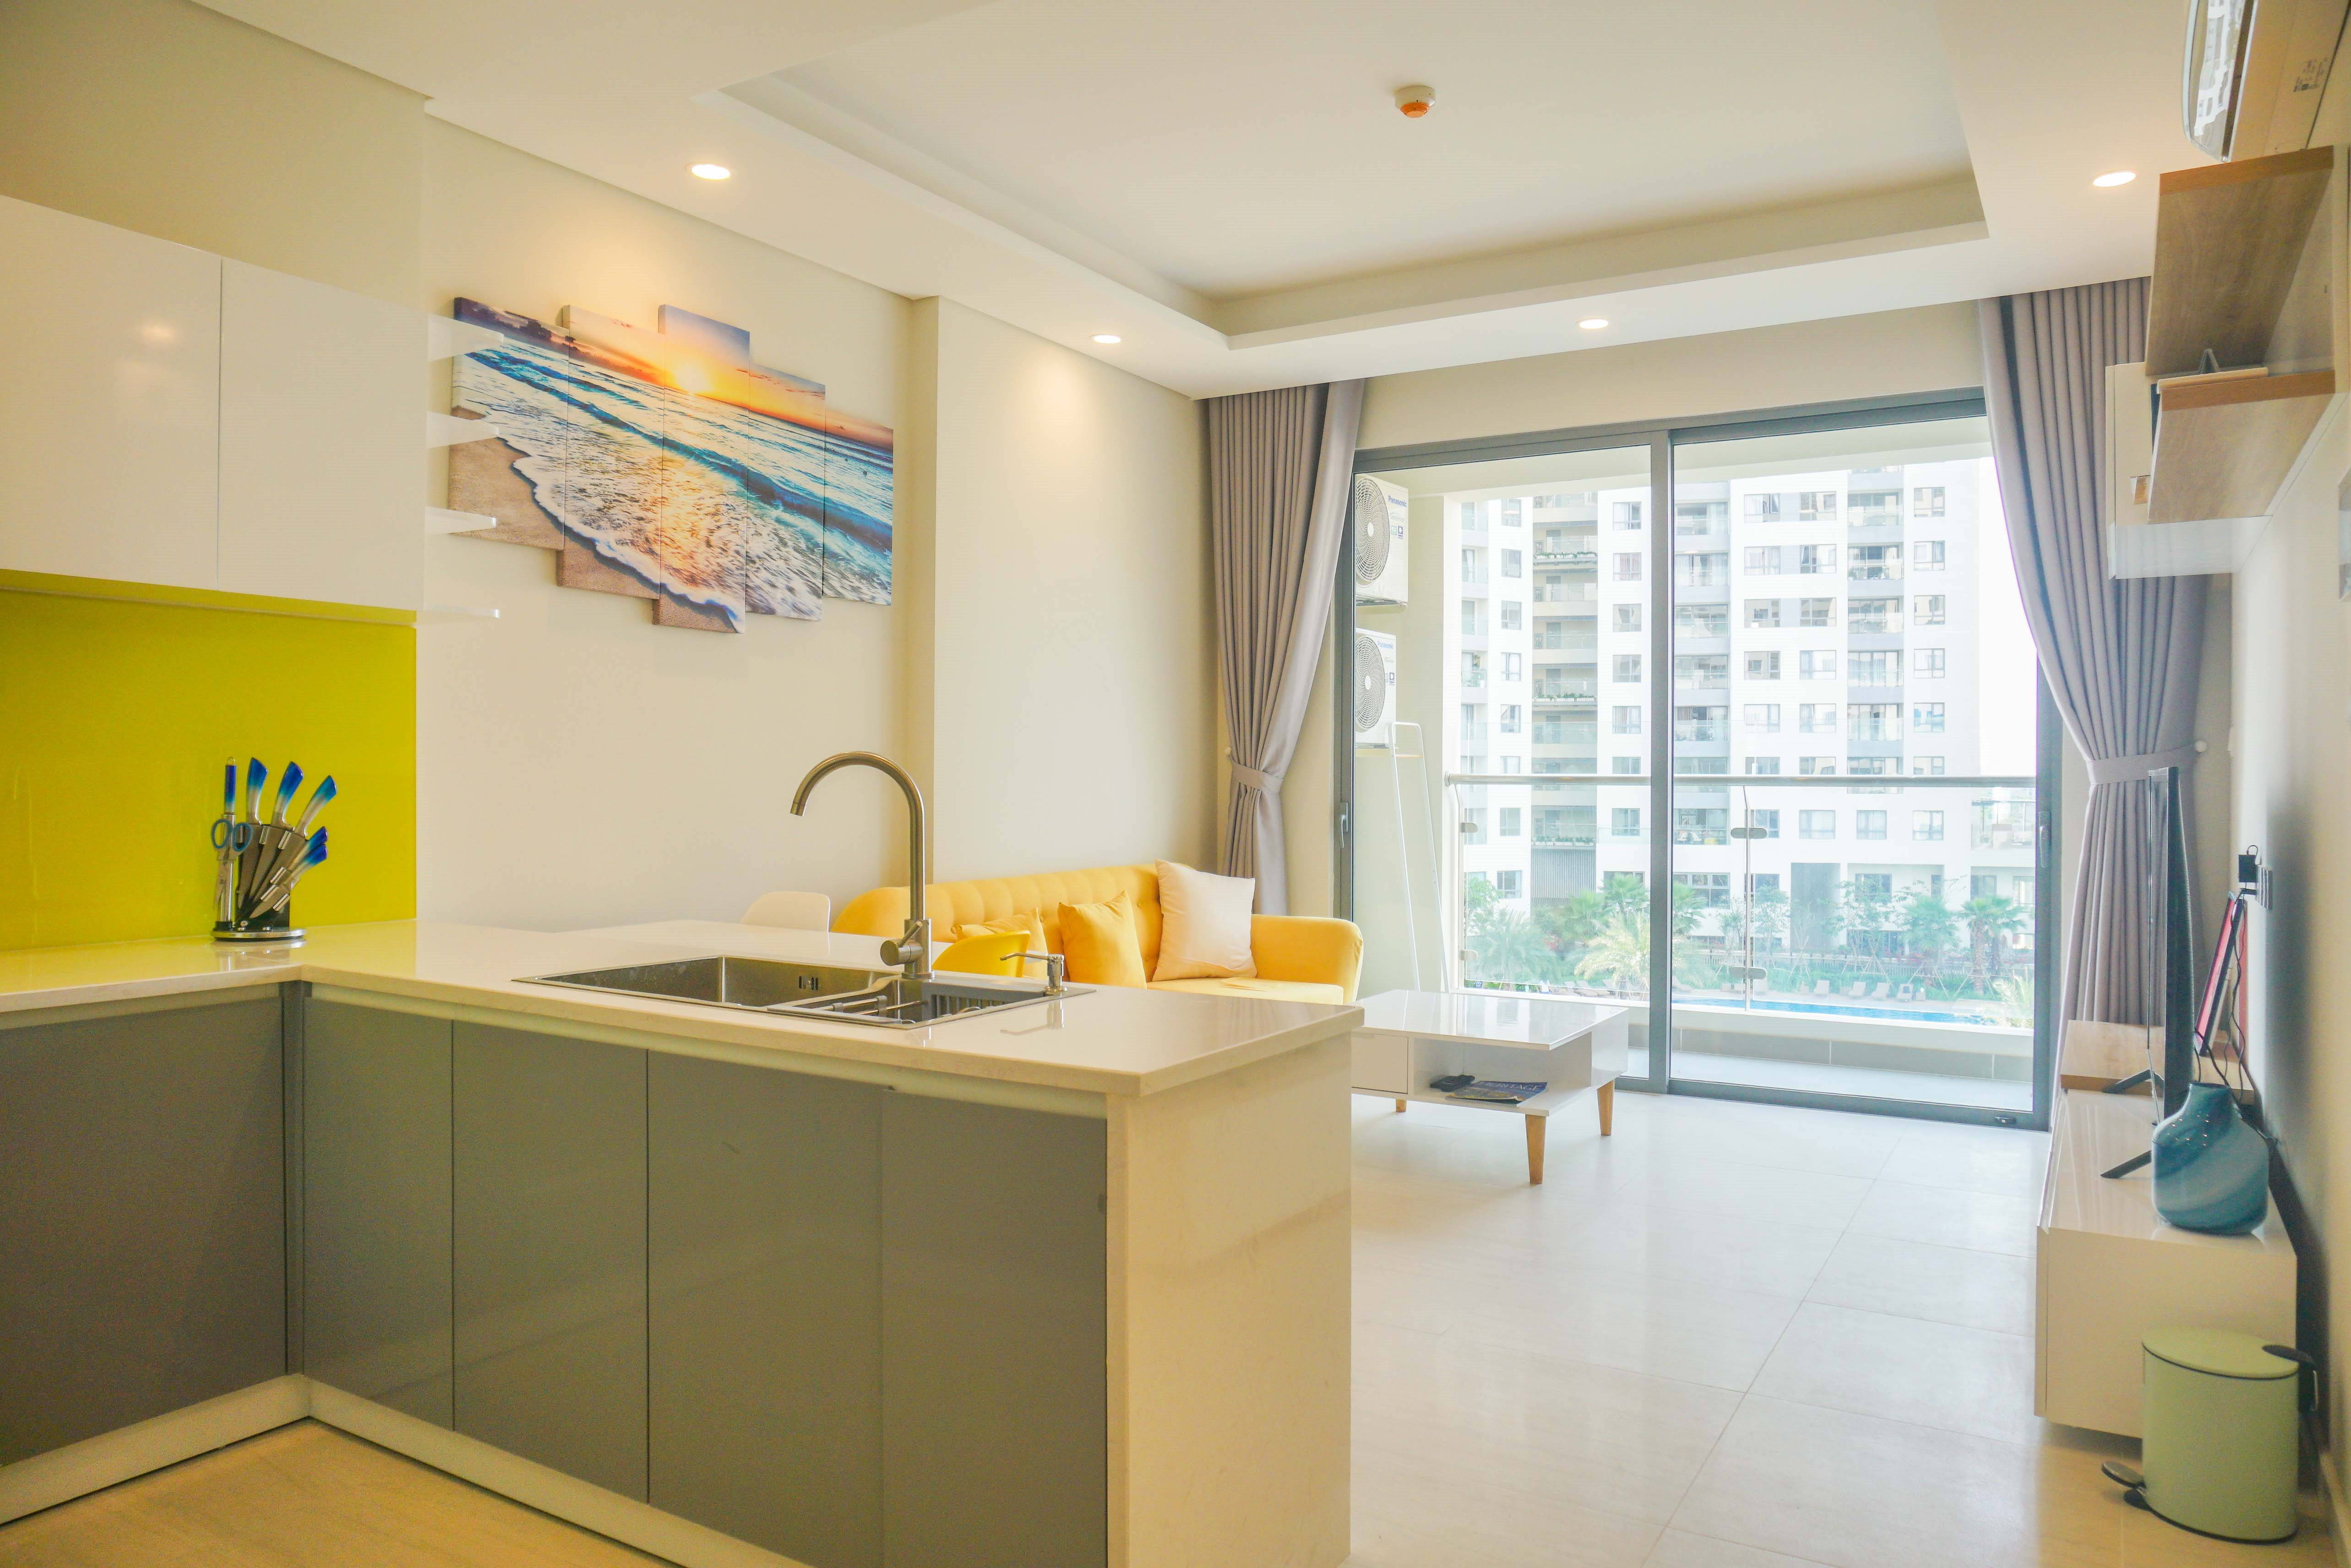 DI0198 - Diamond Island Apartment For Rent & Sale in Ho Chi Minh City - 1 bedroom